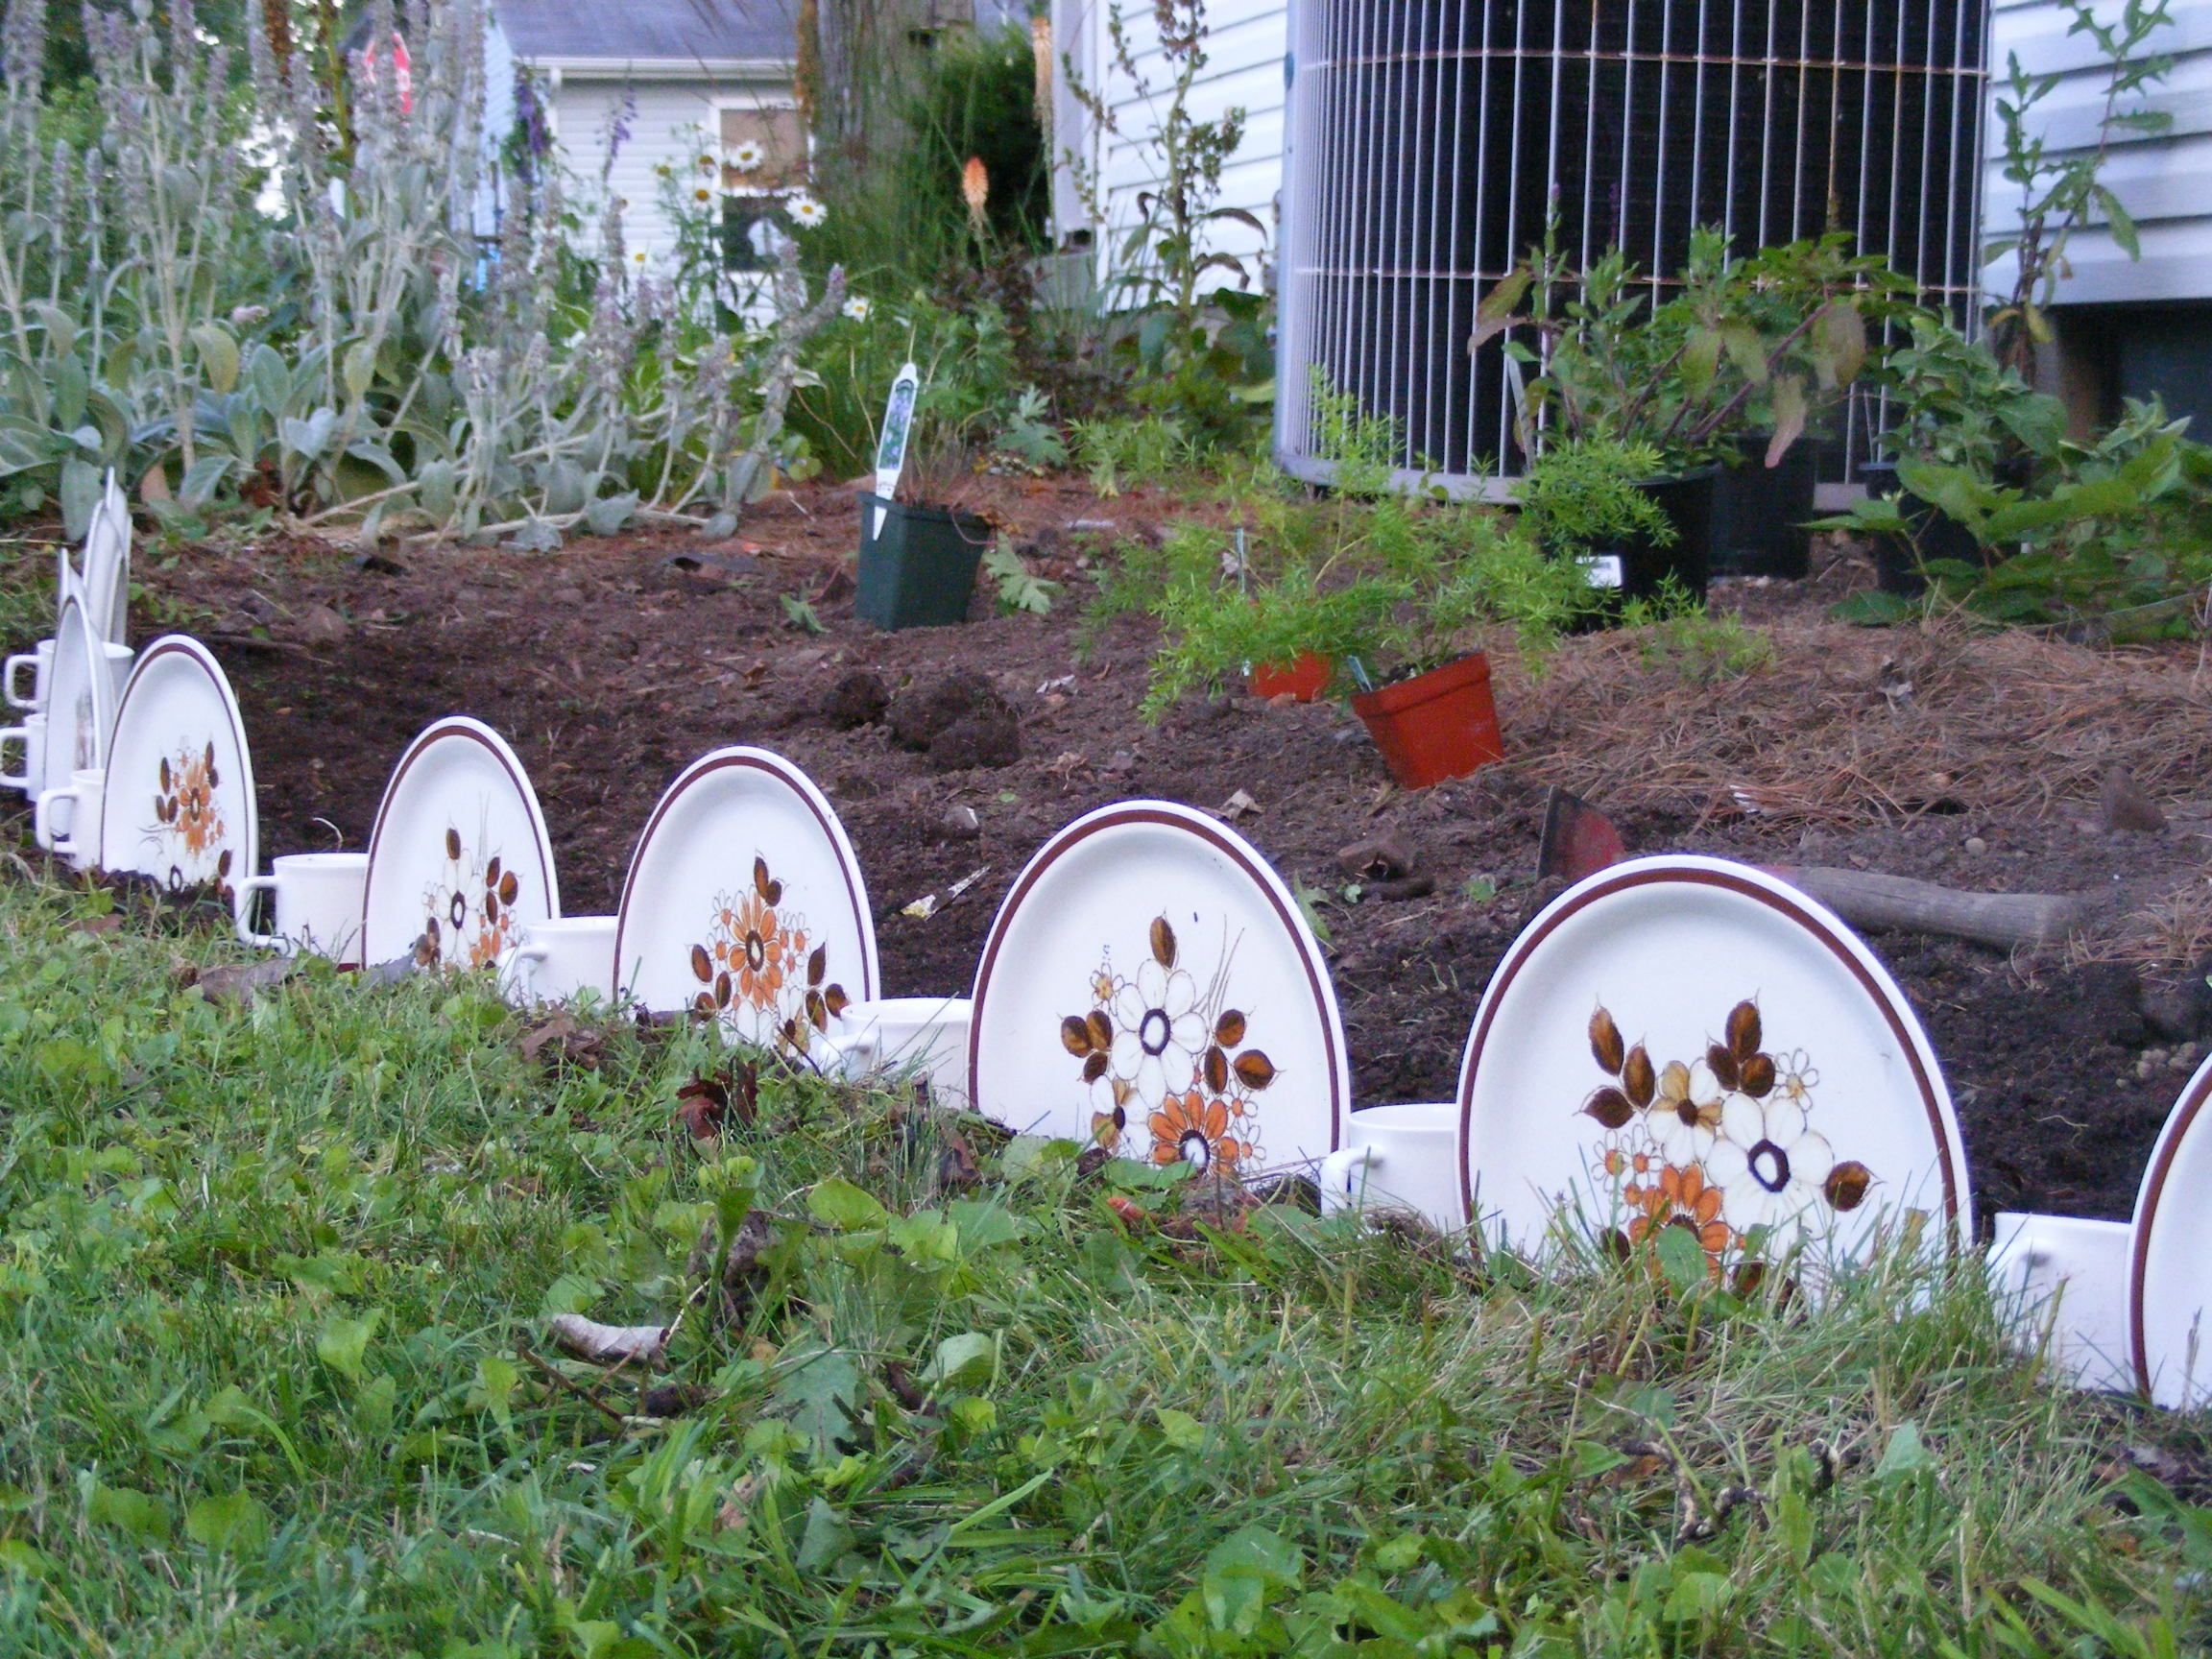 Creative Lawn and Garden Edging Ideas ~ Page 6 of 11 ...